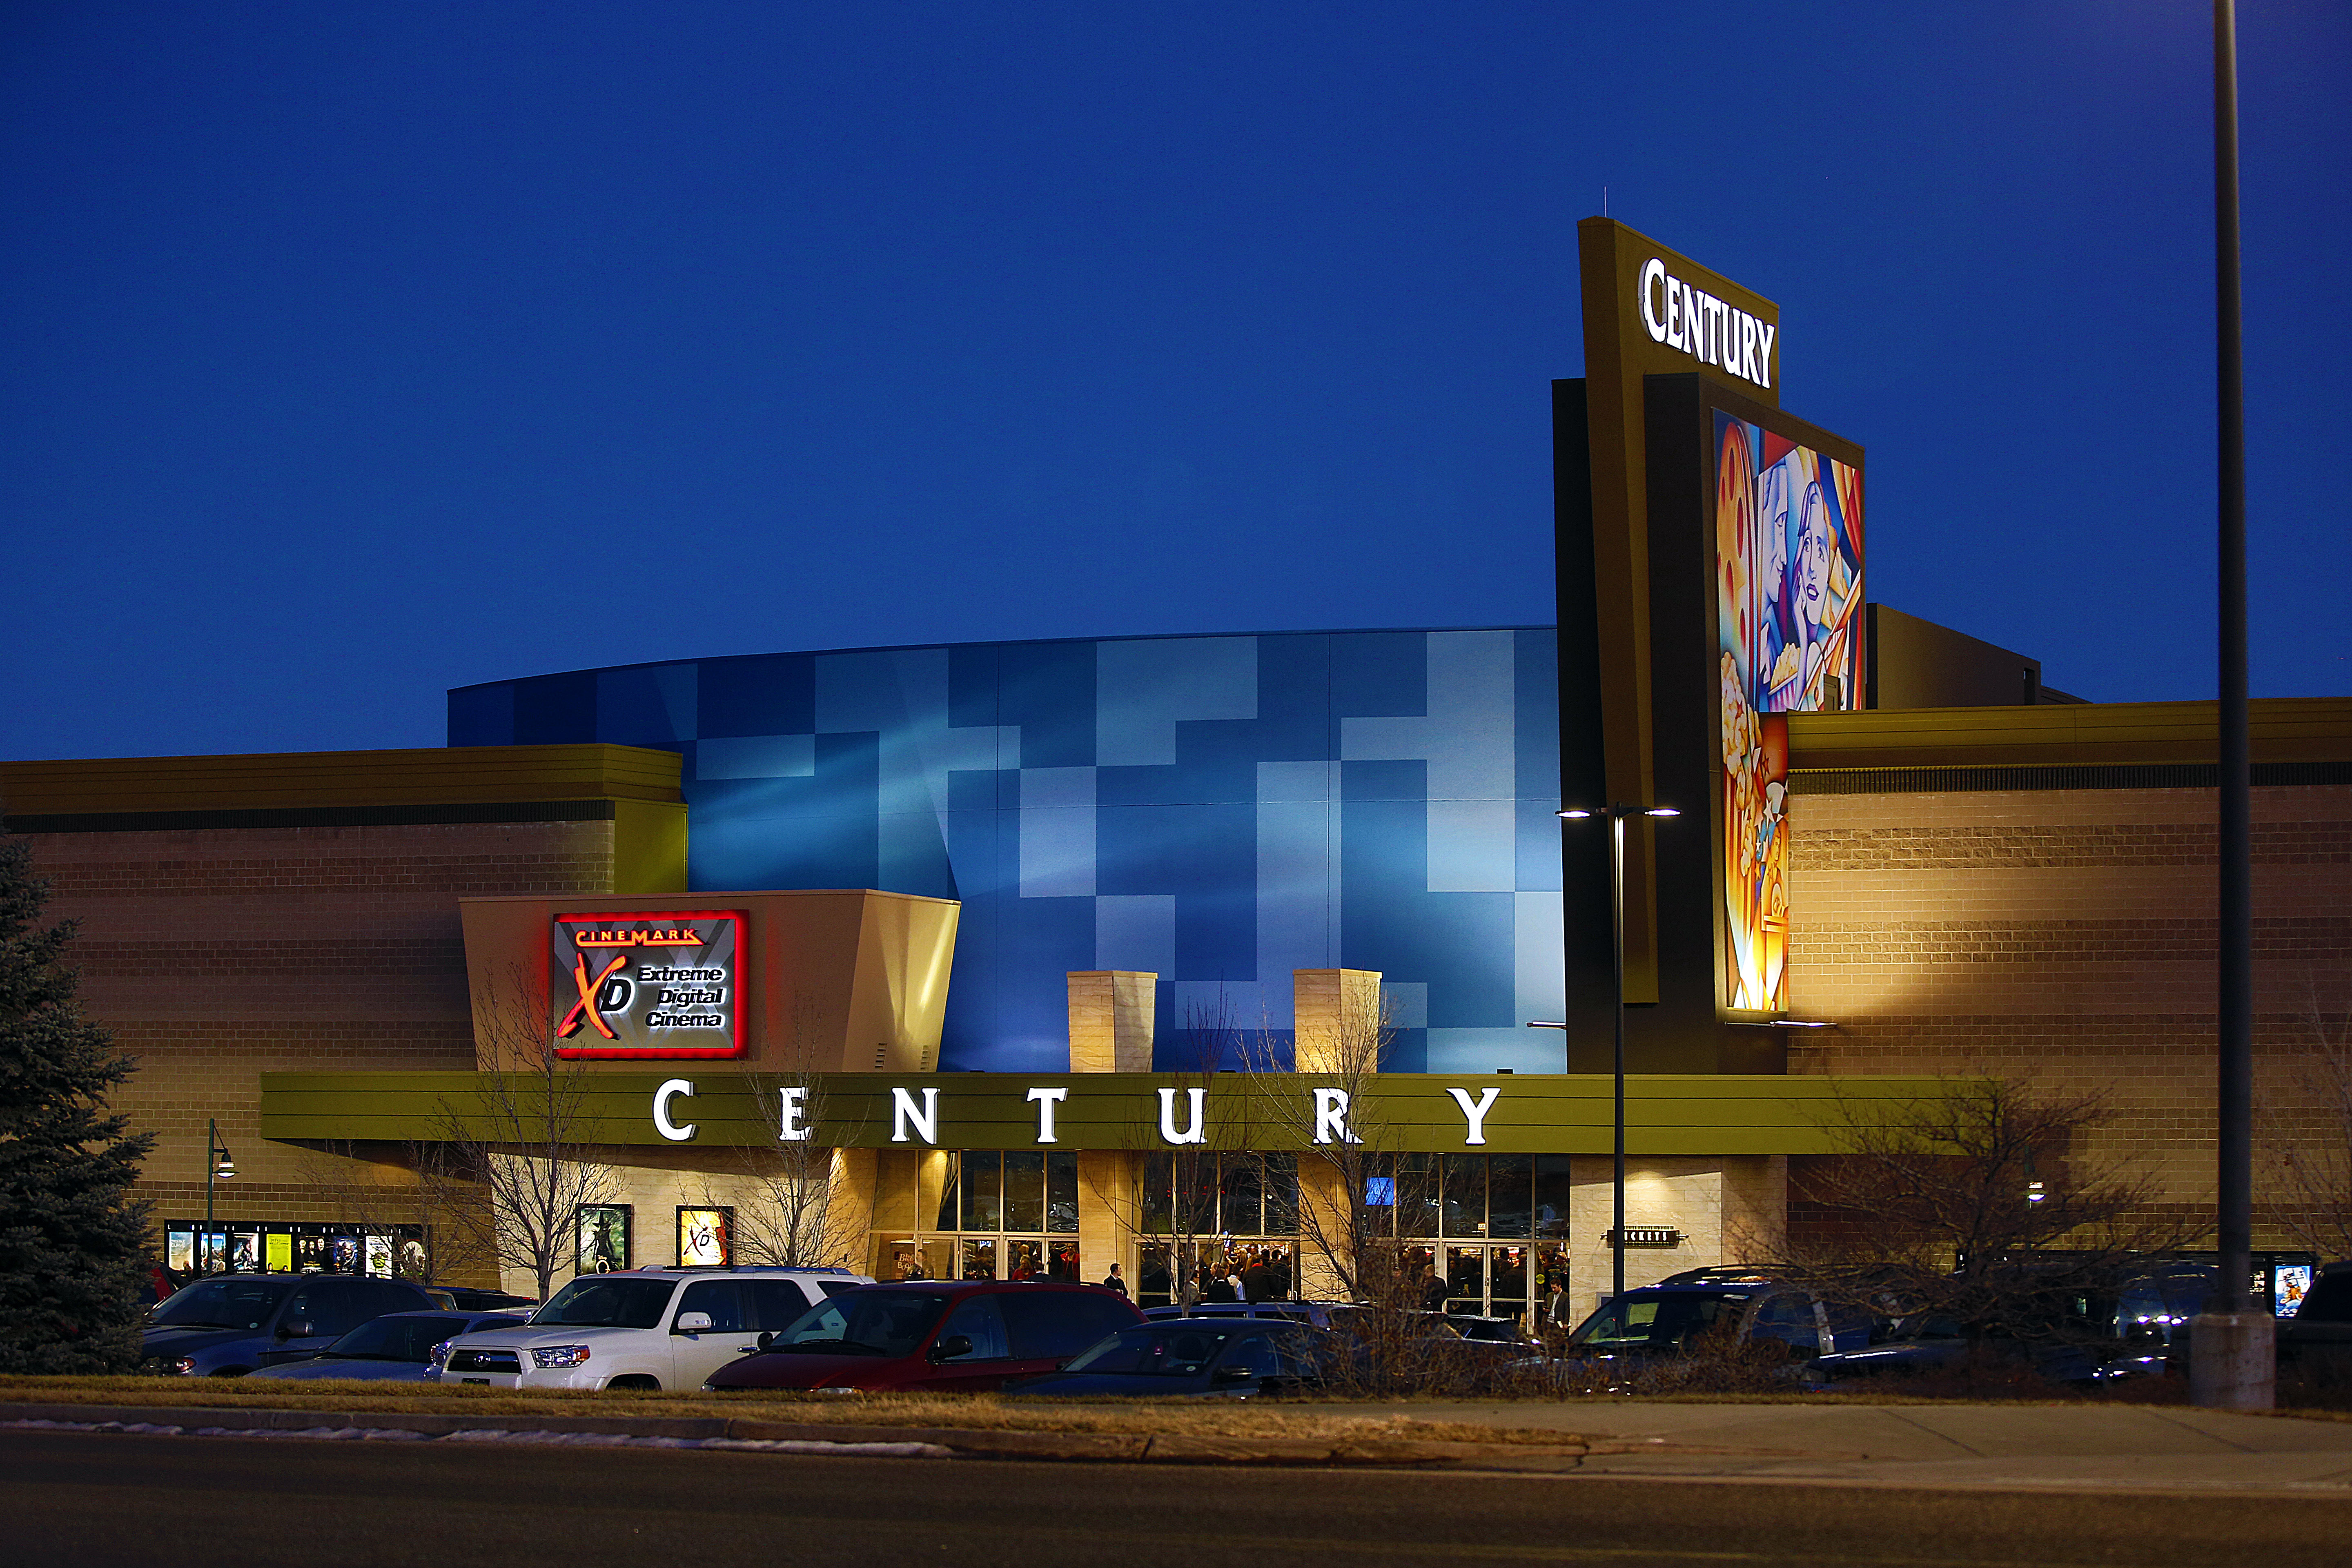 A view of the remodeled exterior facade of the Cinemark Century 16 Theaters in 2013 in Aurora, Colorado. The theater was the site of a mass shooting on July 20, 2012.